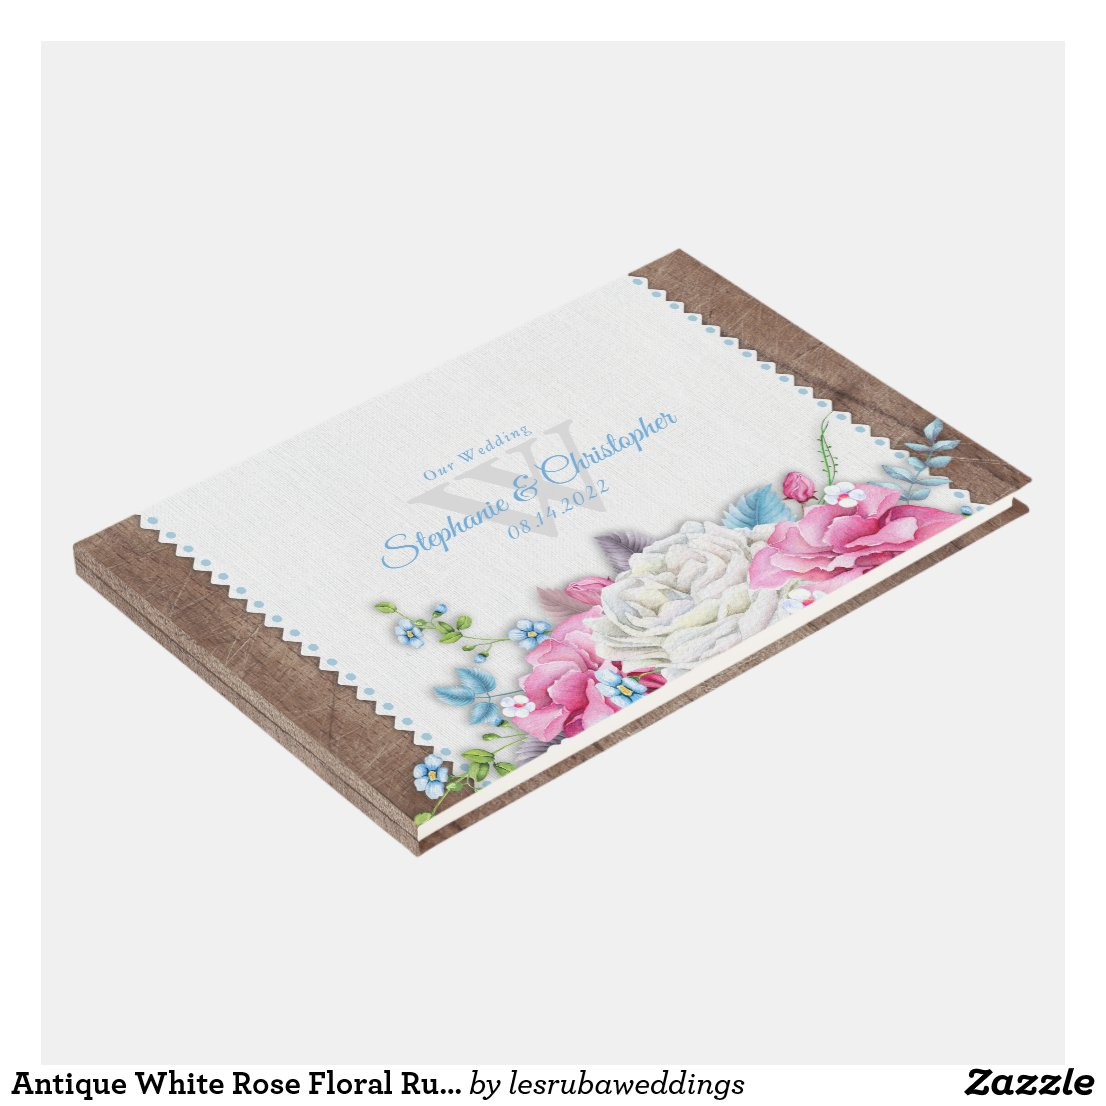 Antique White Rose Floral Rustic Guest Book